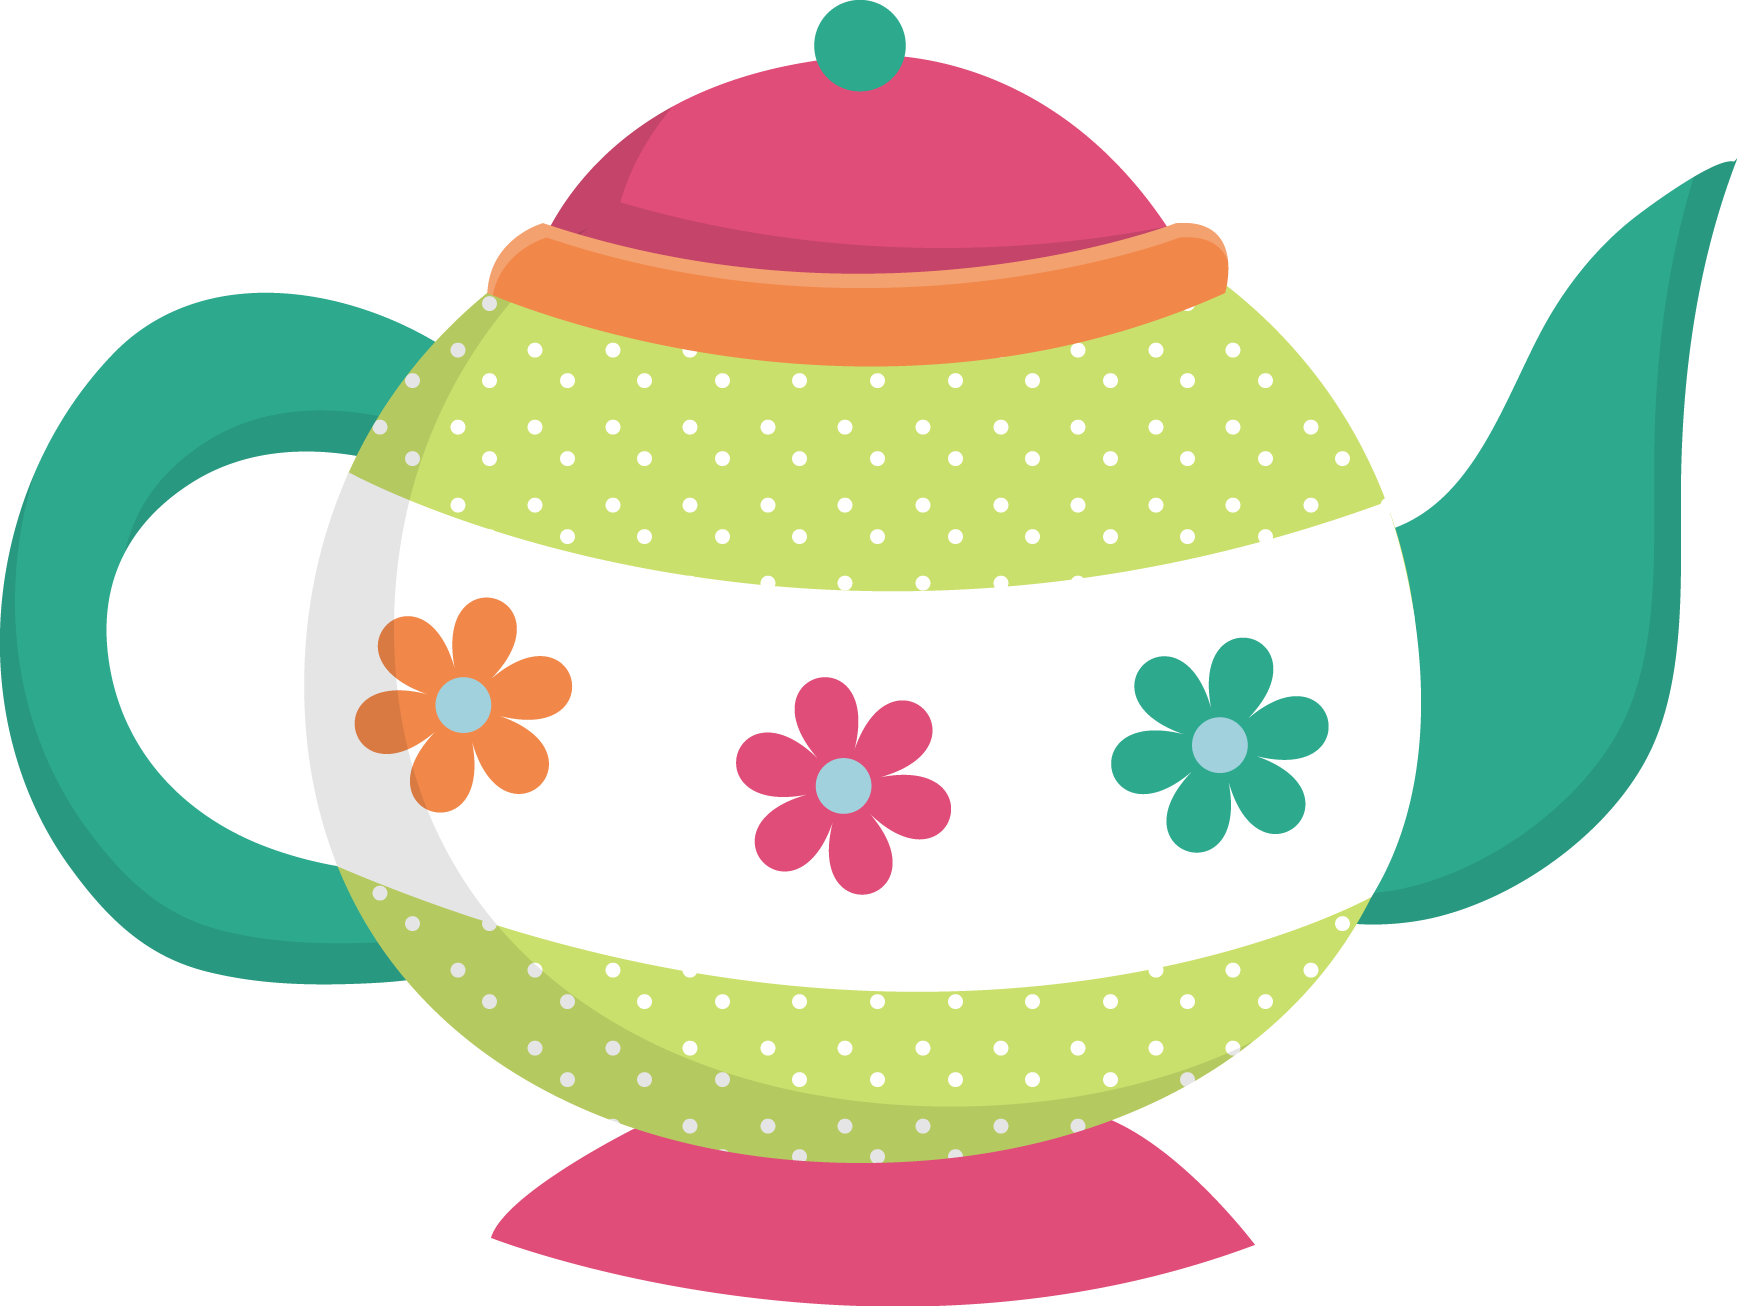 Tea Pot Clip Art Cliparts Co-Tea Pot Clip Art Cliparts Co-7